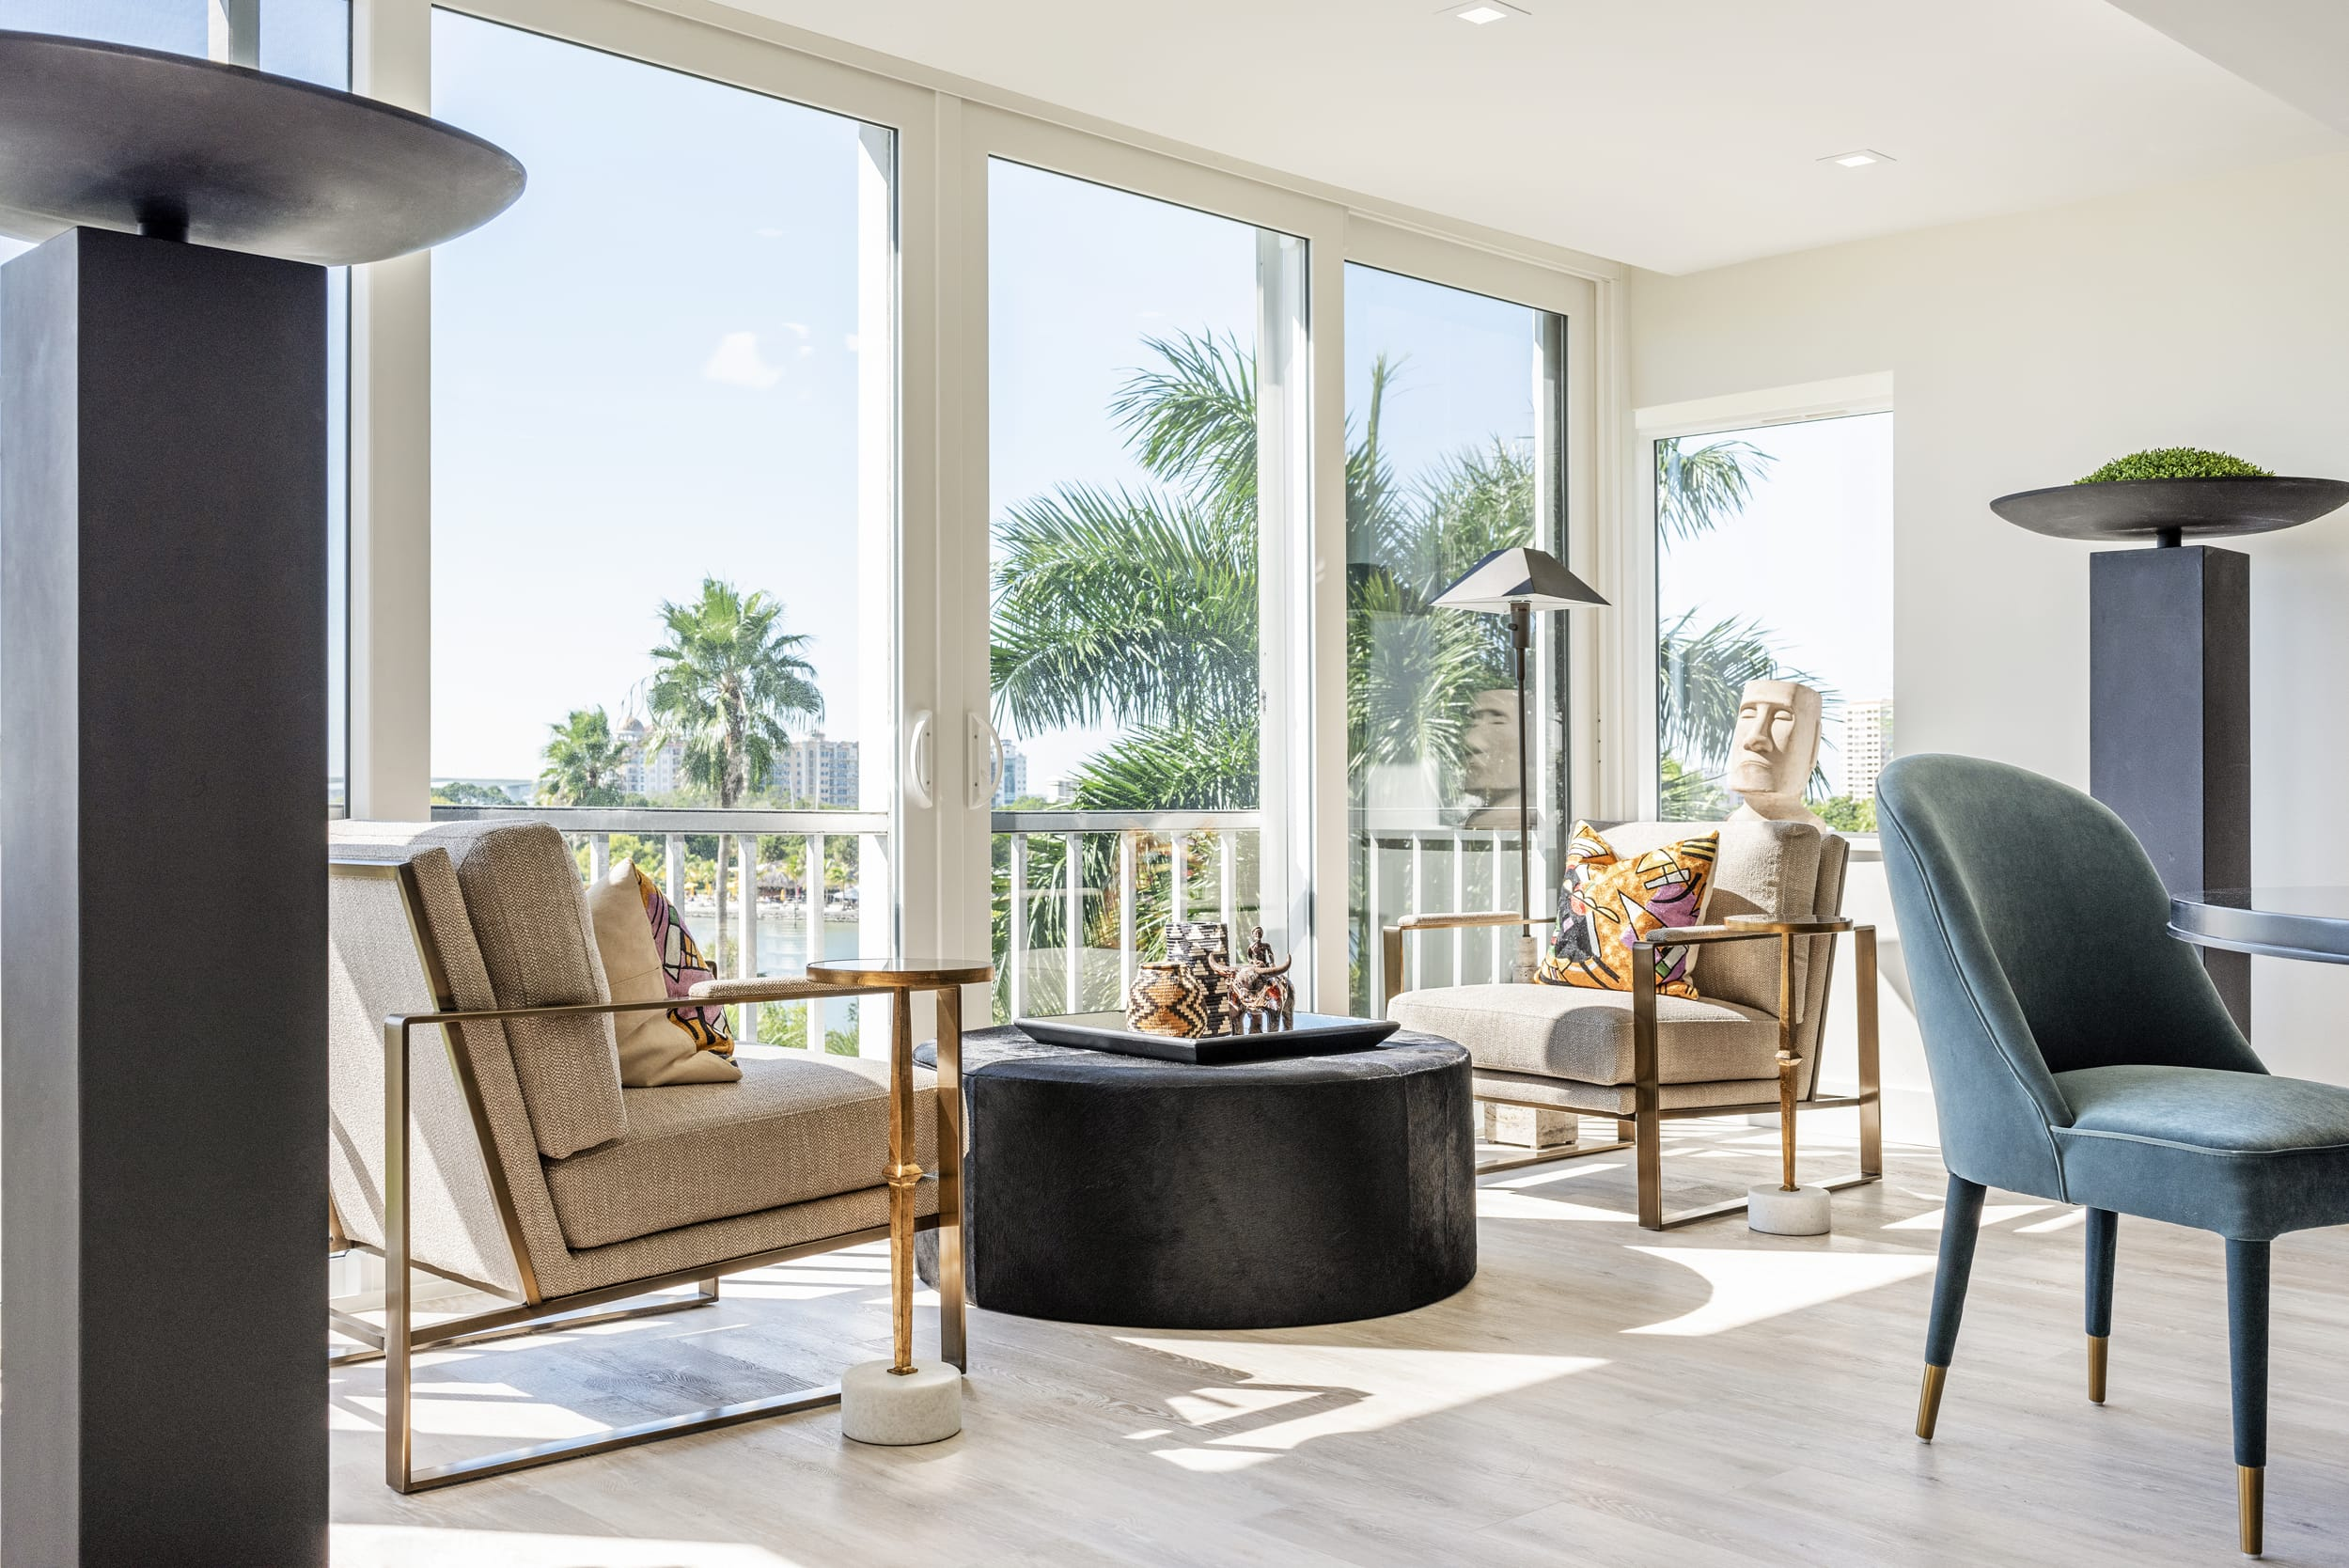 Coast View Gold Frame Arm Chairs Black Suade Pouffe Blonde Wood Floors